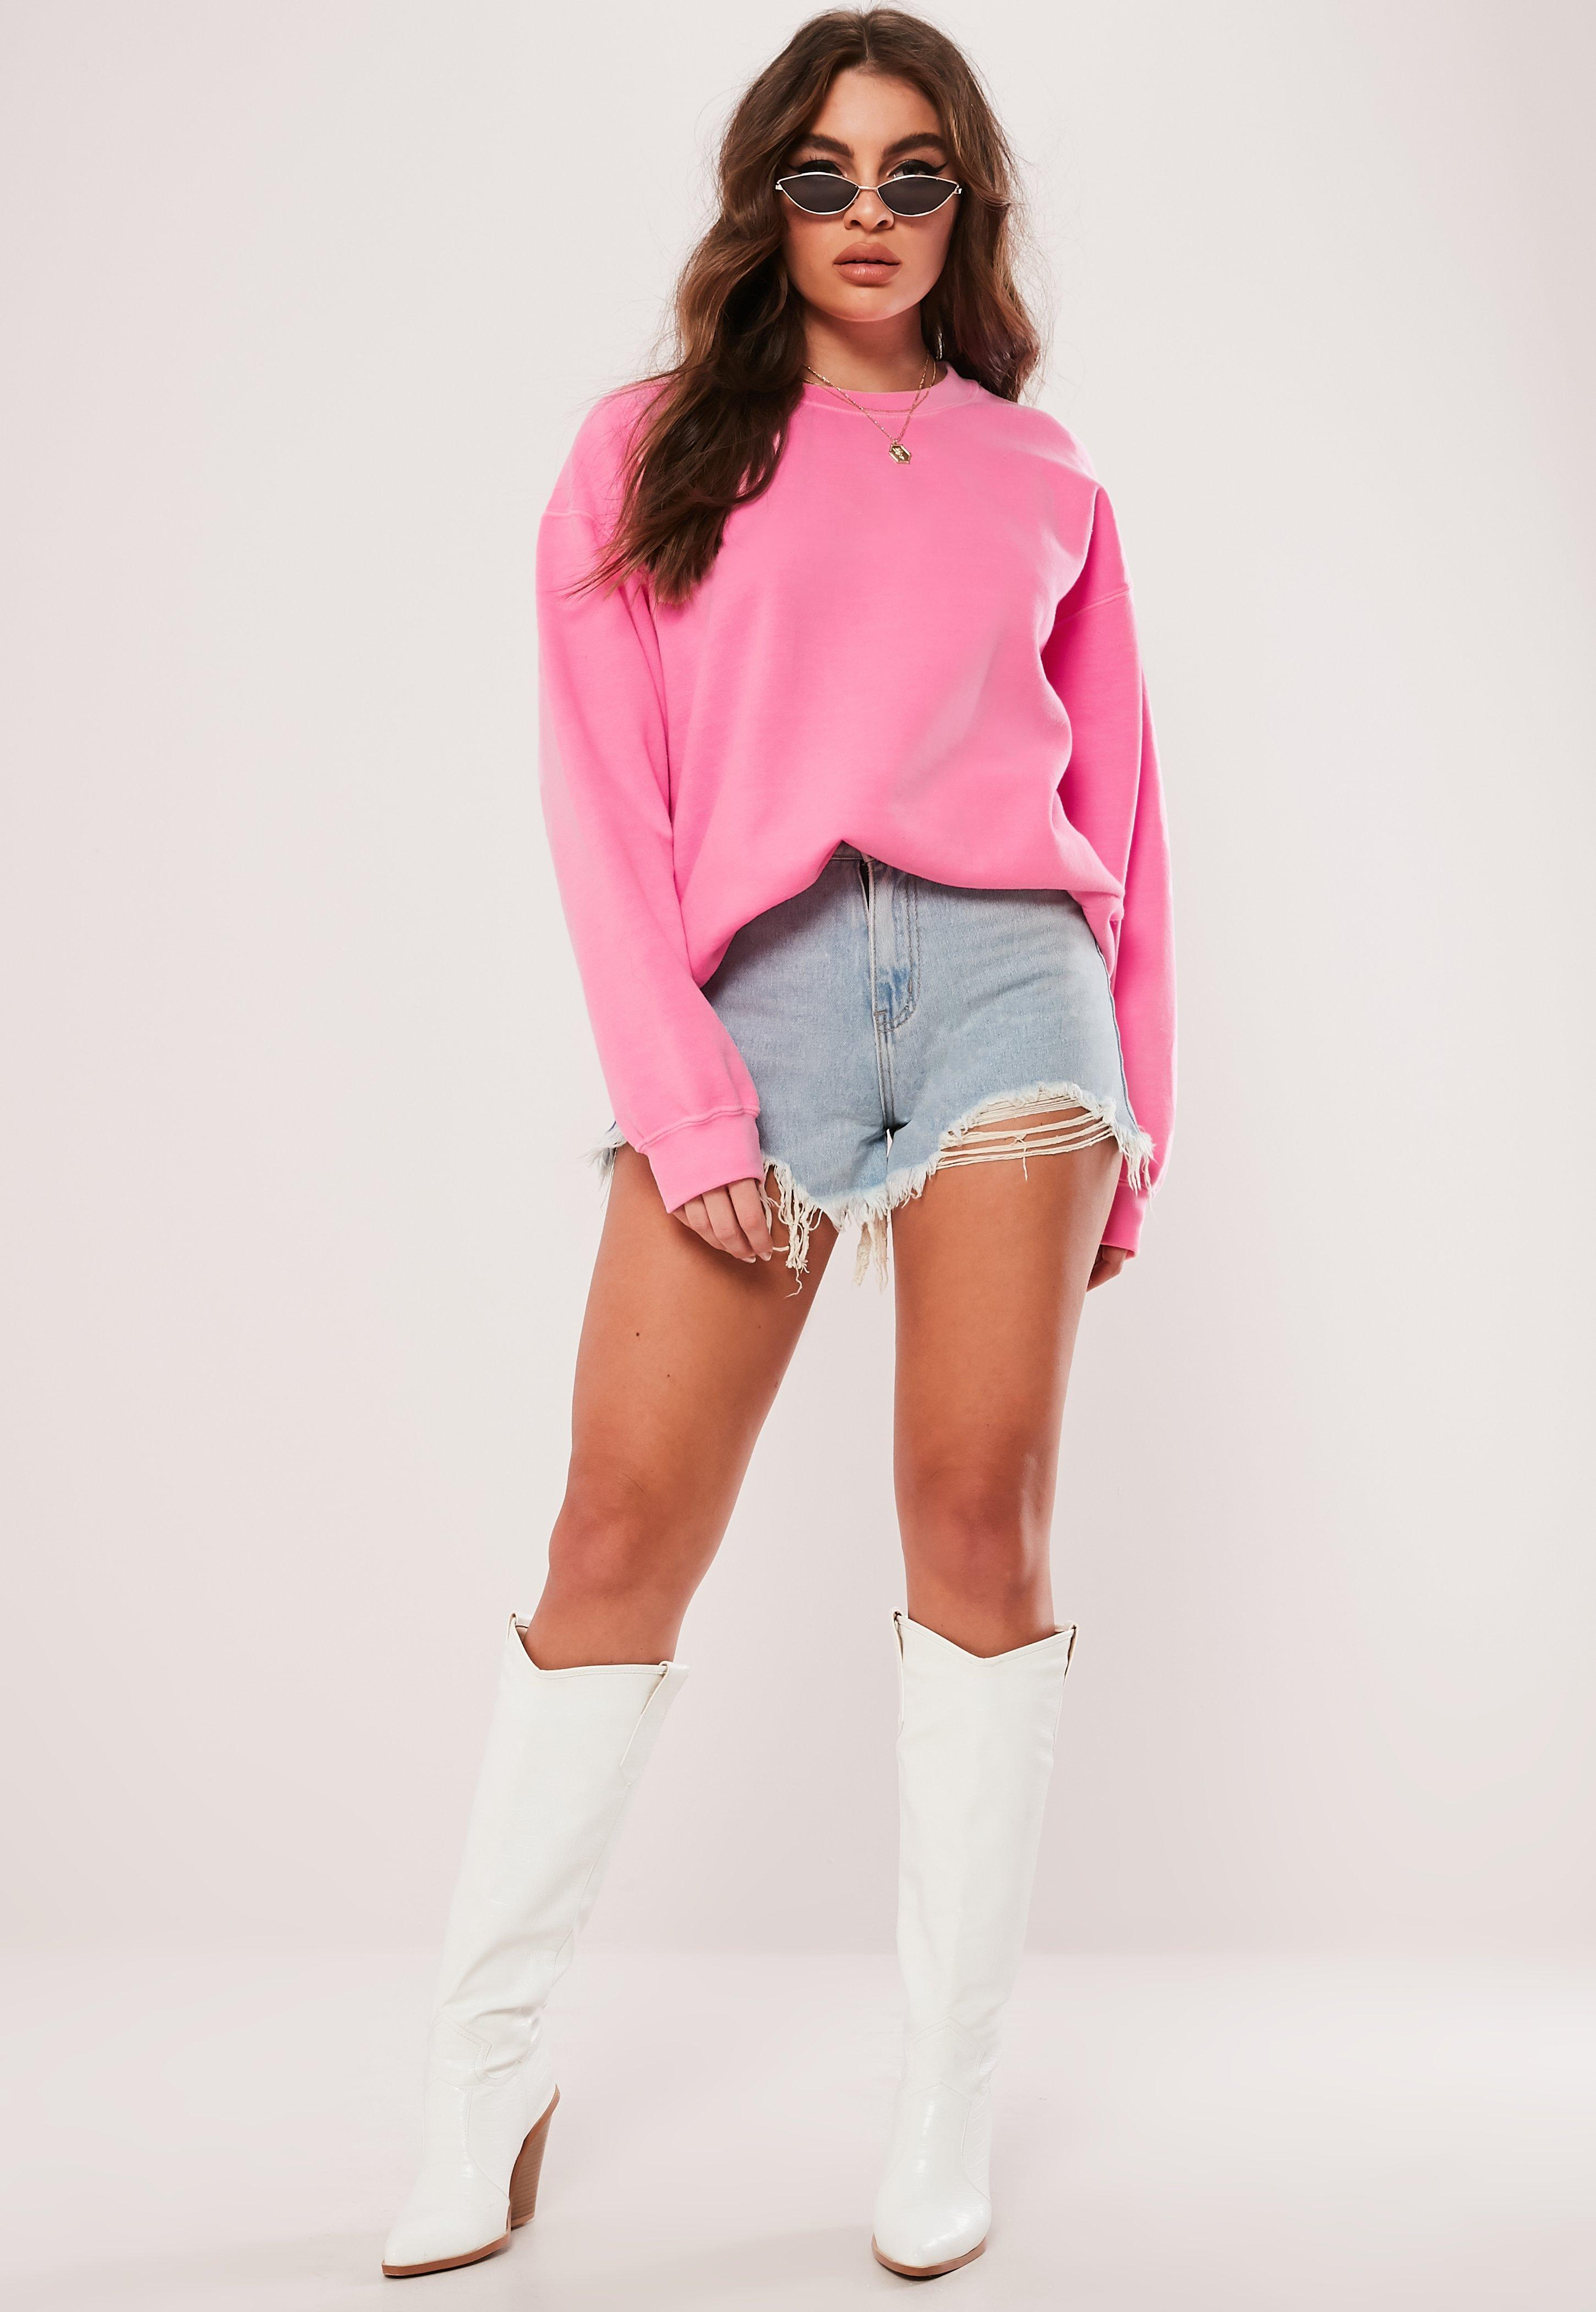 89c5a02c9a9f3b Festival Outfits | Festival Clothing & Wear | Missguided